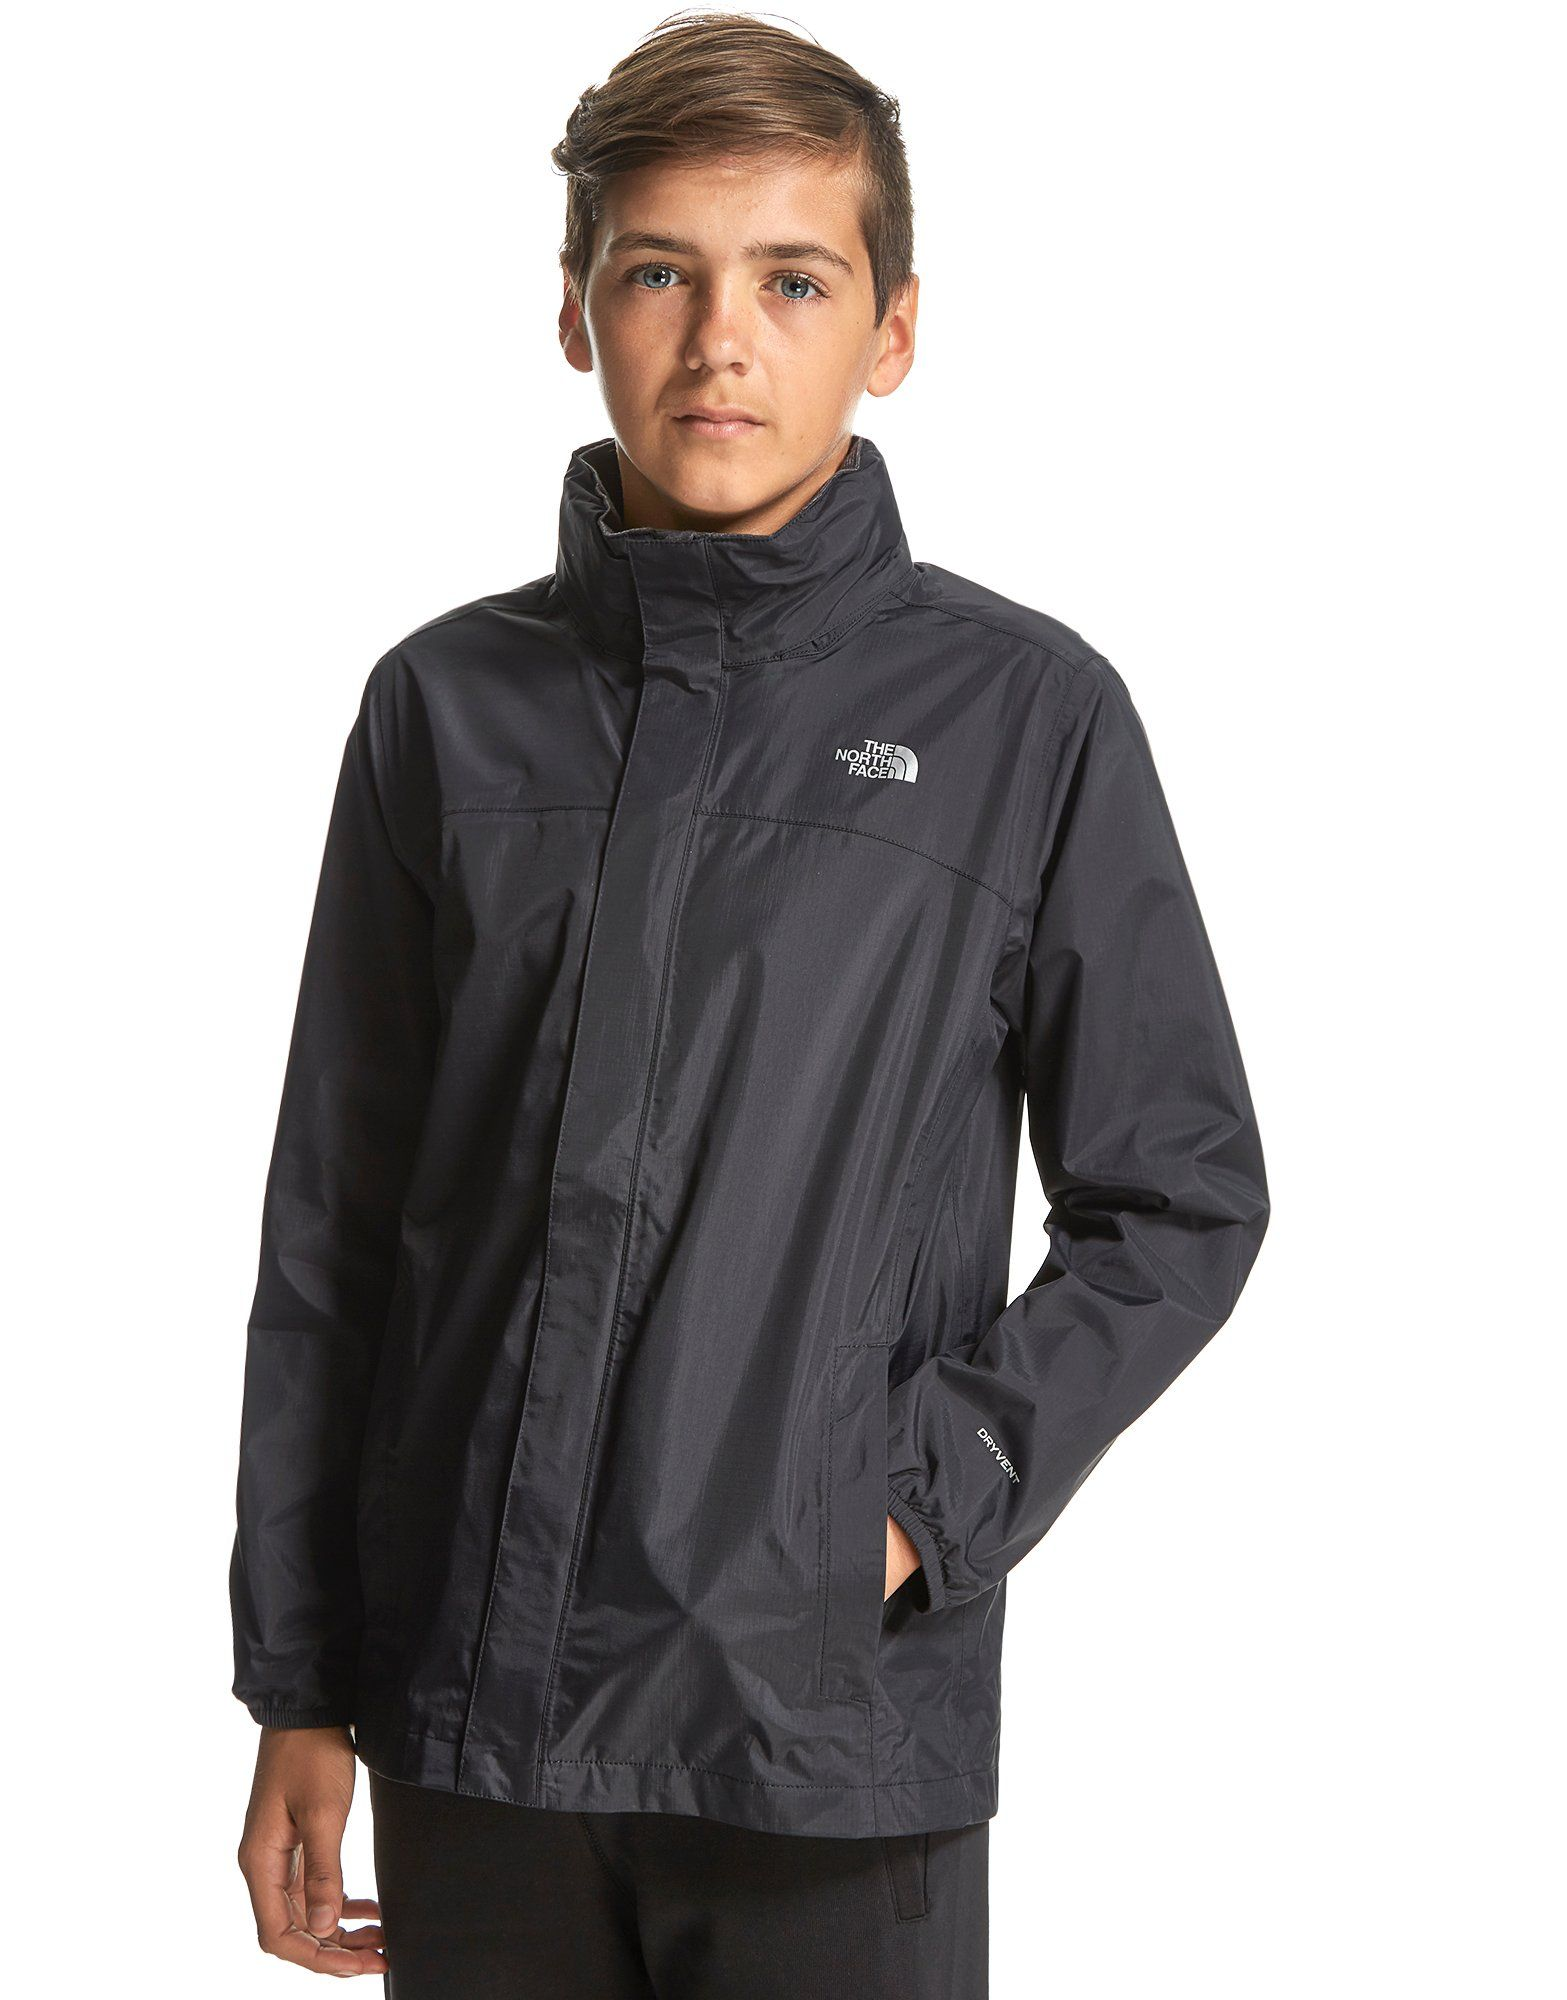 Kids Coats &amp Jackets | Girls &amp Boys Coats &amp Jackets | JD Sports